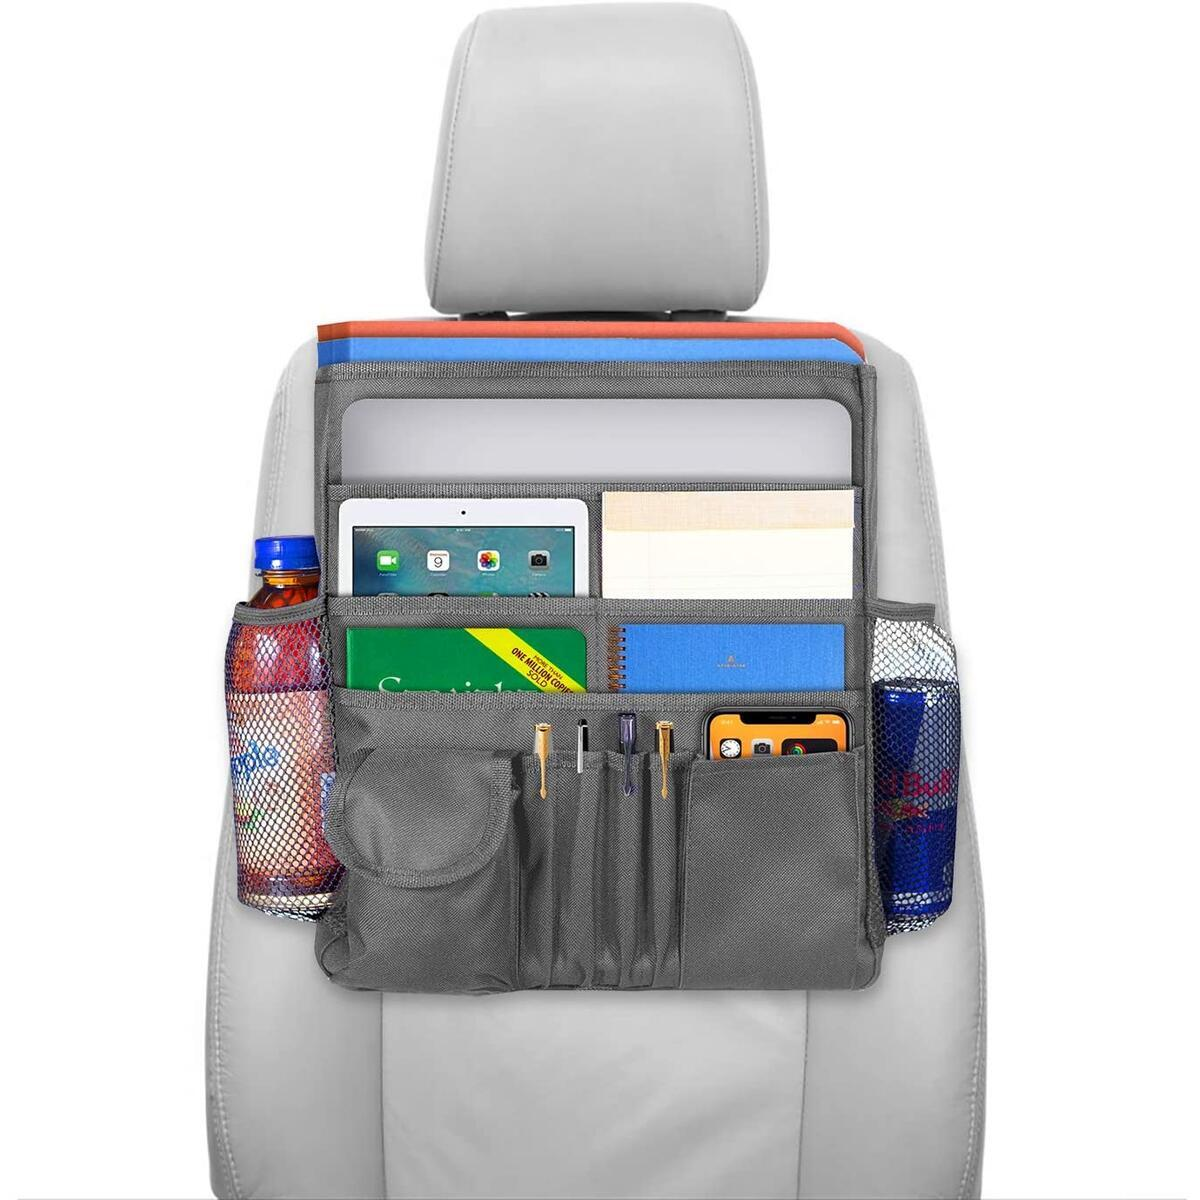 Car Office Organizer, Front Seat Storage Bag for Supplies and Snacks, Travel Accessories Tote Bag with Multiple Large Pockets and A Closable Flap, Backseat Bag, for Adults Or Kids - Grey